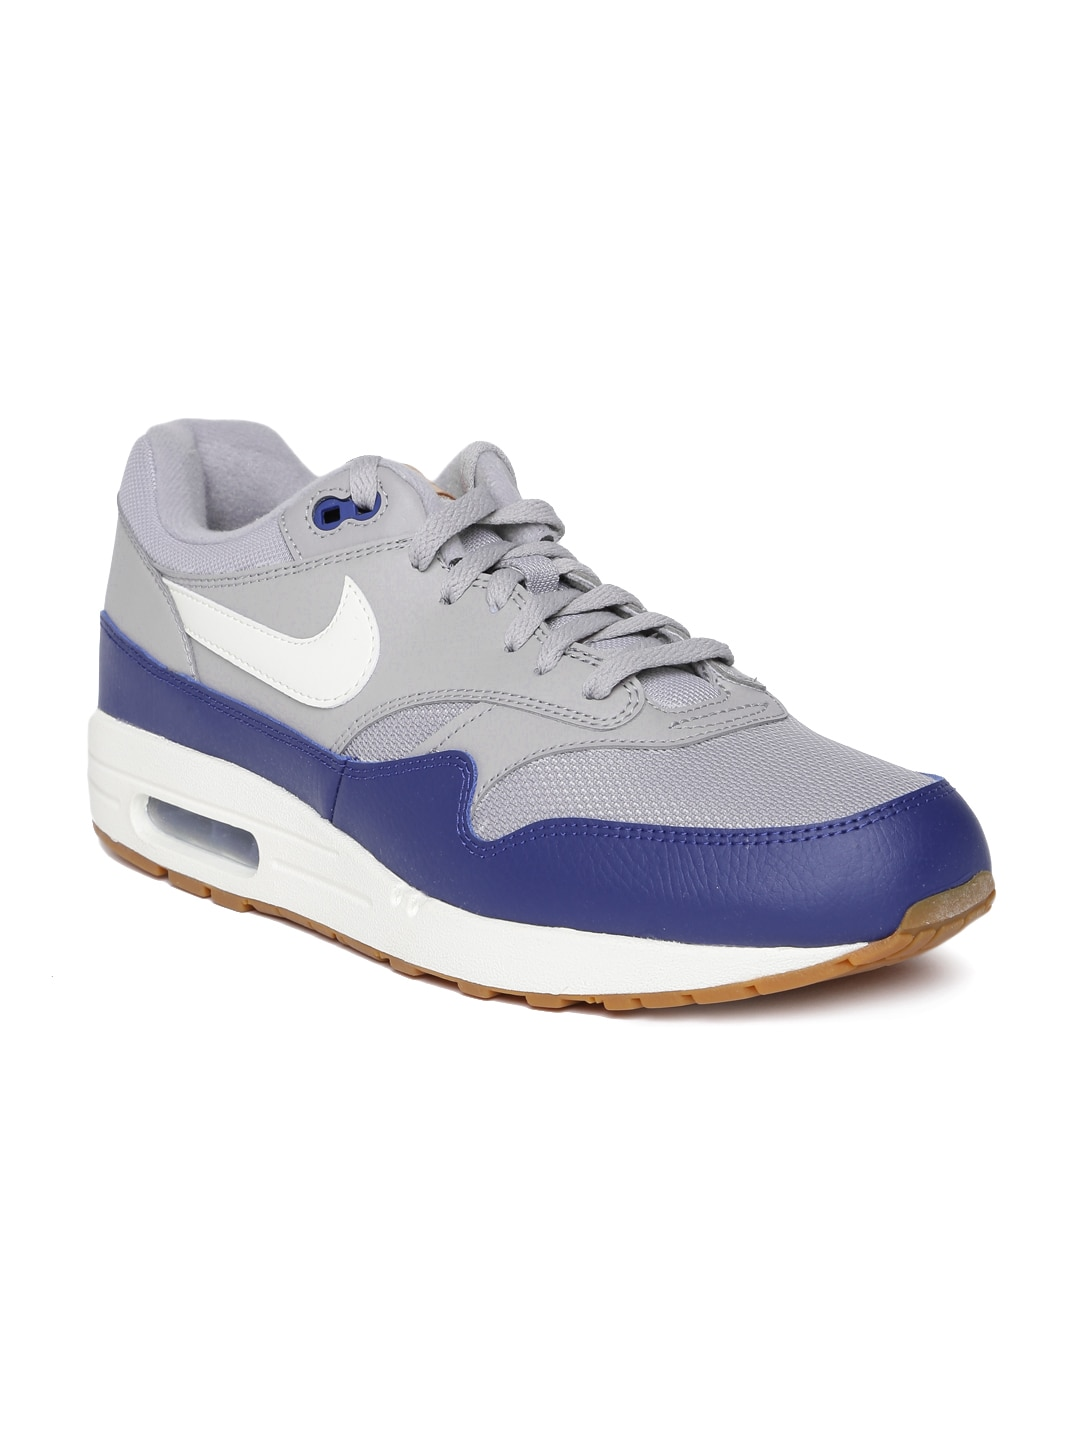 new product 94e17 90b8b Nike Air Max - Buy Nike Air Max Shoes, Bags, Sneakers in India